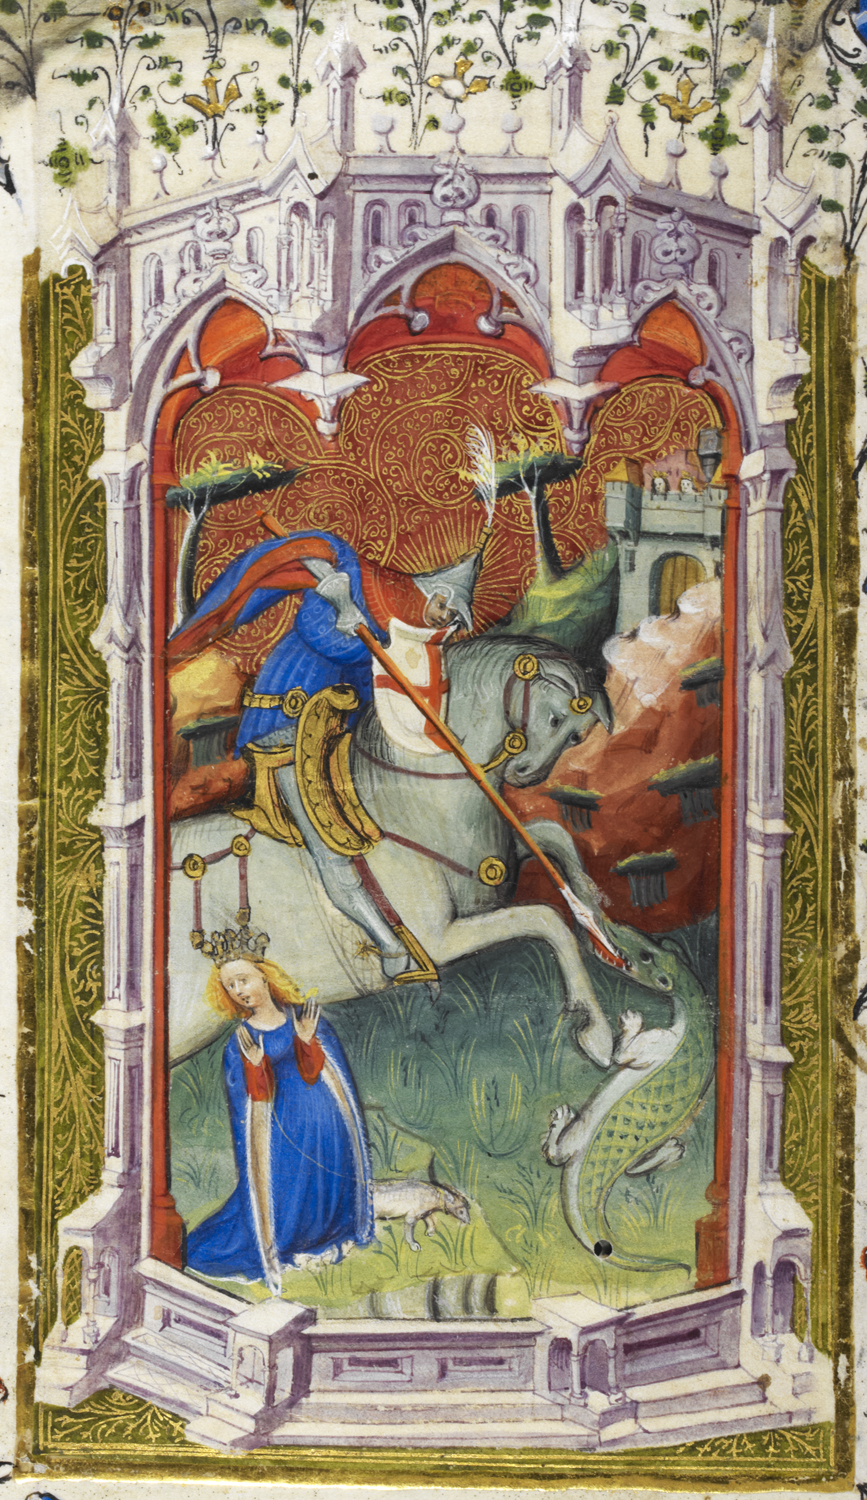 The History Blog » Blog Archive » Celebrate St. George\'s Day with an ...